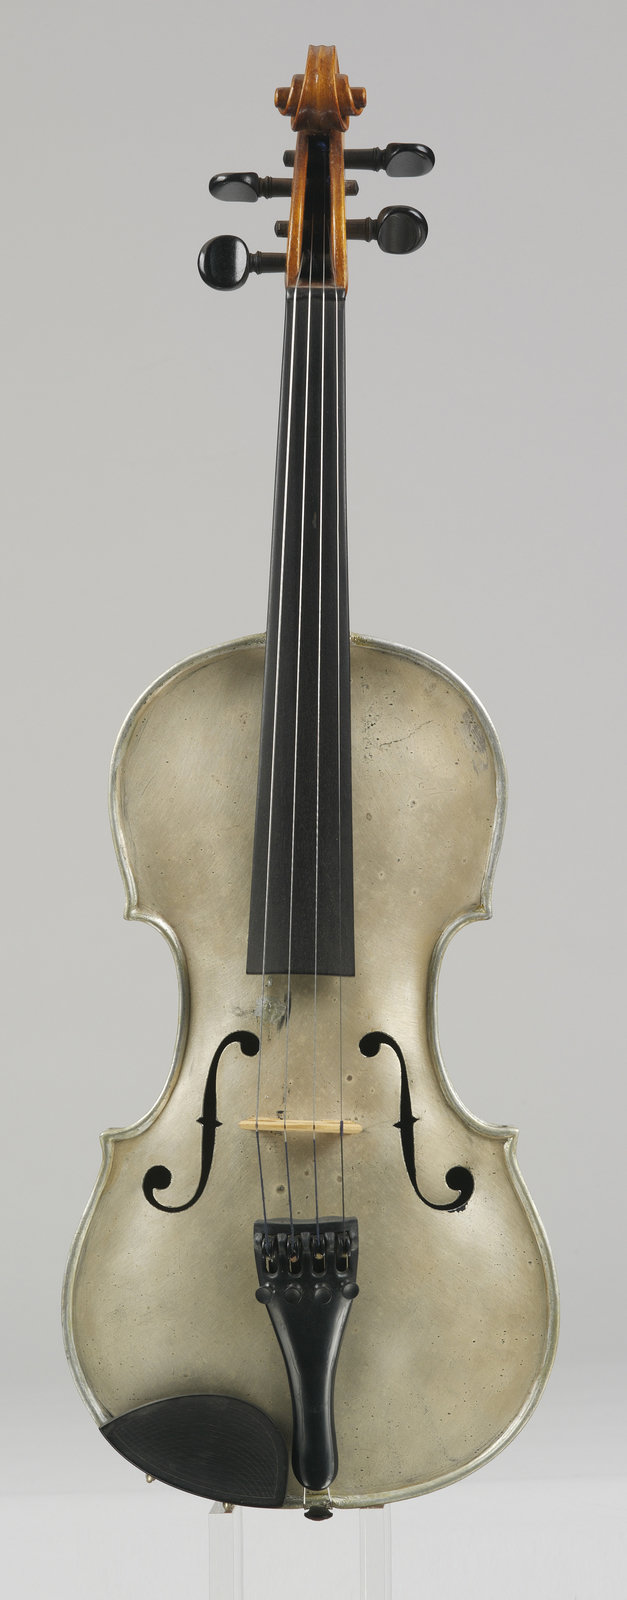 Violin made of aluminum, Heinrich Wachwitz, [The body of this violin consists of sheet Aluminium. The light metal is known from 1808 on only. During the first half of the 19th century, it was more expensive then gold. At the time this violin was constructed, the industrial production of Aluminium was in place, but it was still considered as precious material. From a acoustical point of view, however, it is of no use for violin making.], Germanisches Nationalmuseum, CC BY-NC-SA